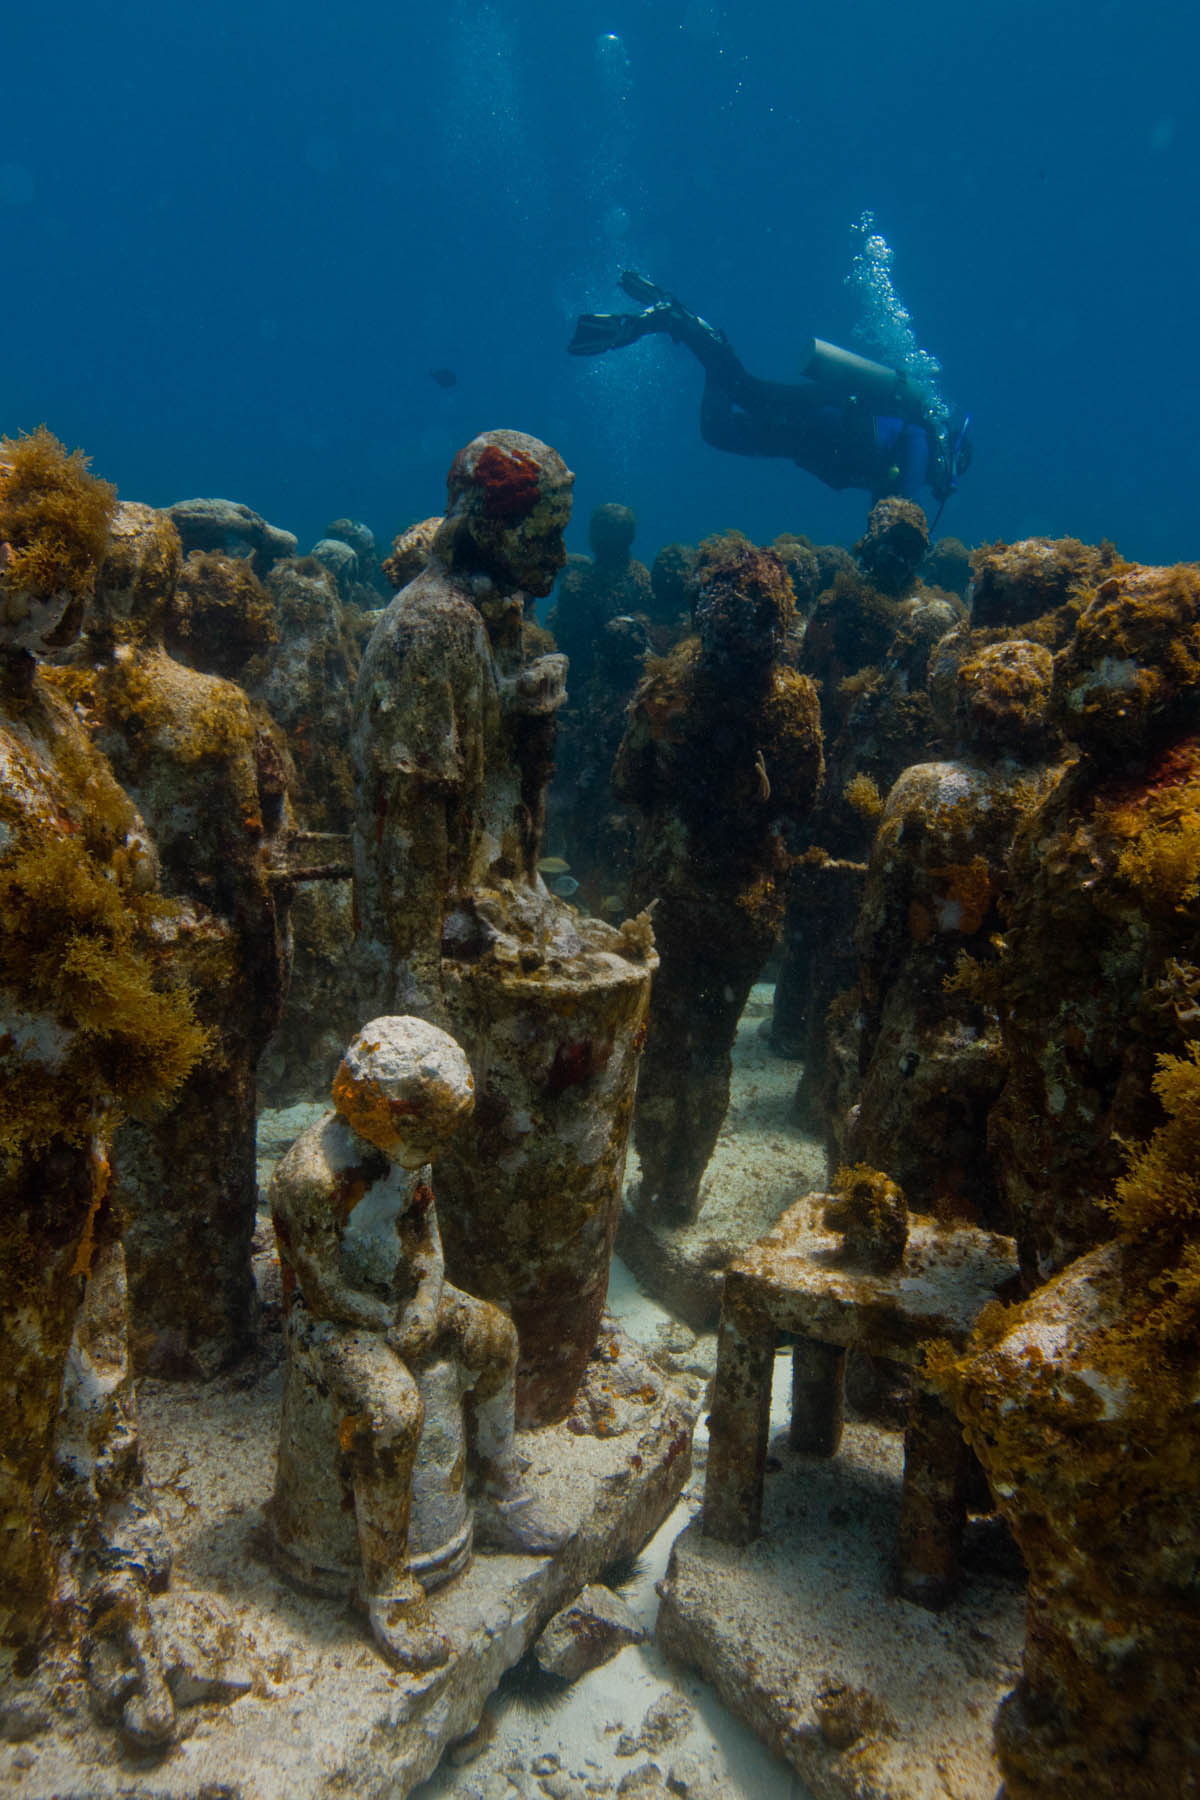 Underwater-sculpture-Silent-Evolution-Jason-DeCaires-Taylor